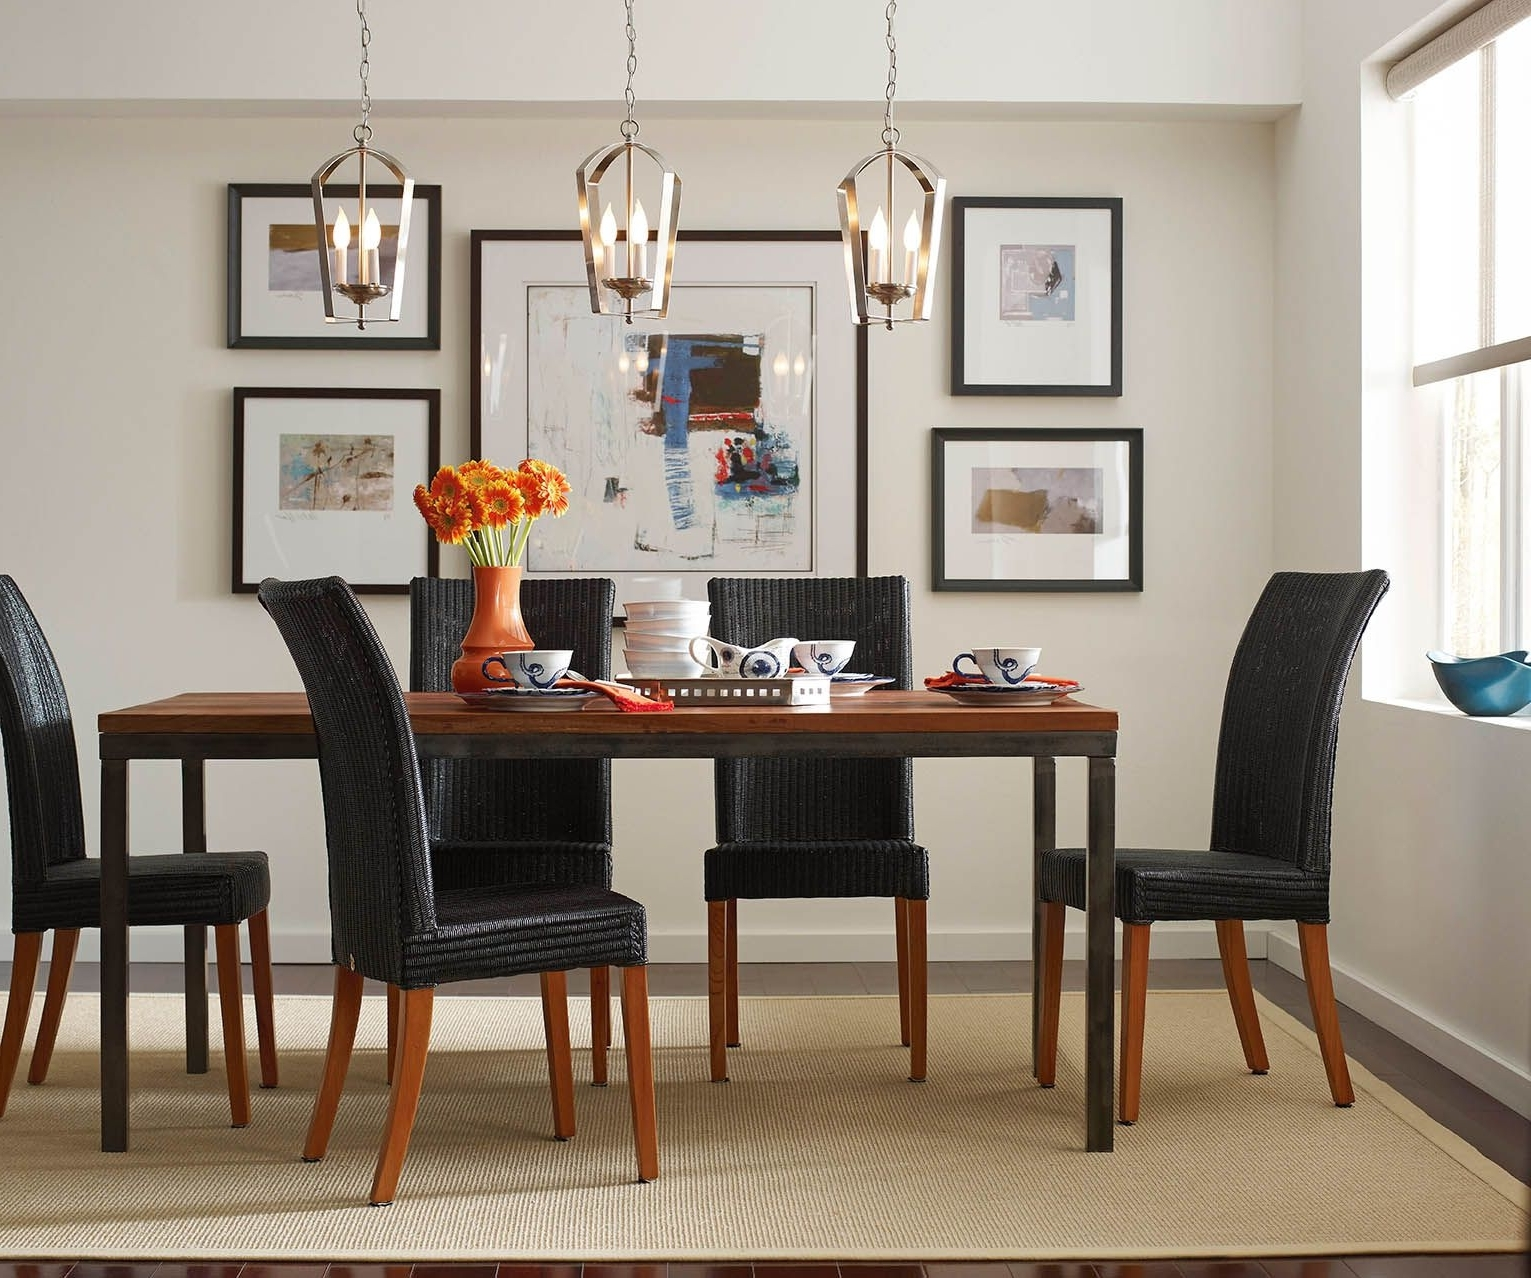 Current Image Result For 3 Drum Pendant Over Dining Table (View 10 of 25)